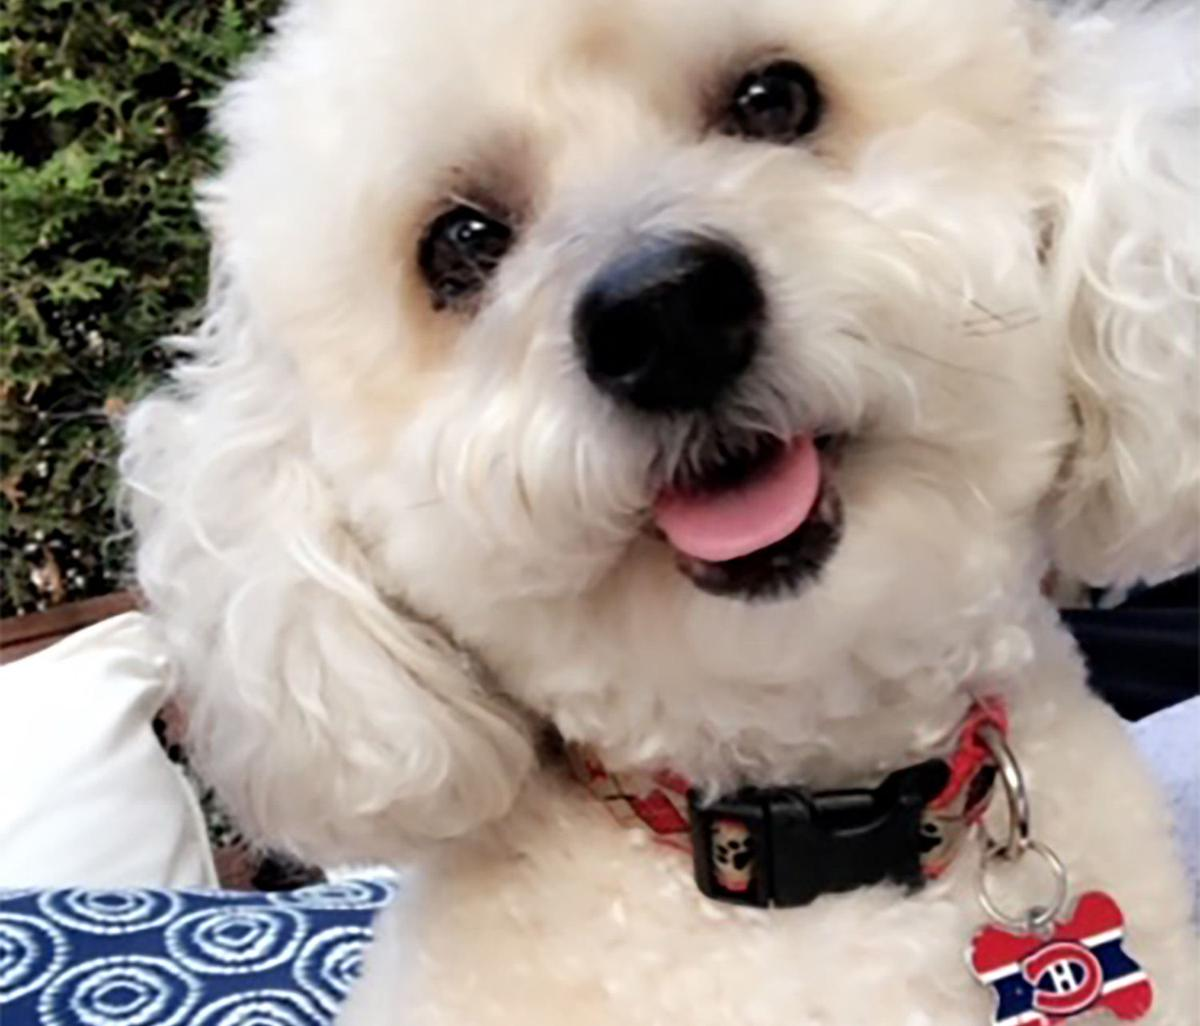 Suzanne Reisler Litwin: Understand This — I'm not a crazy dog person!